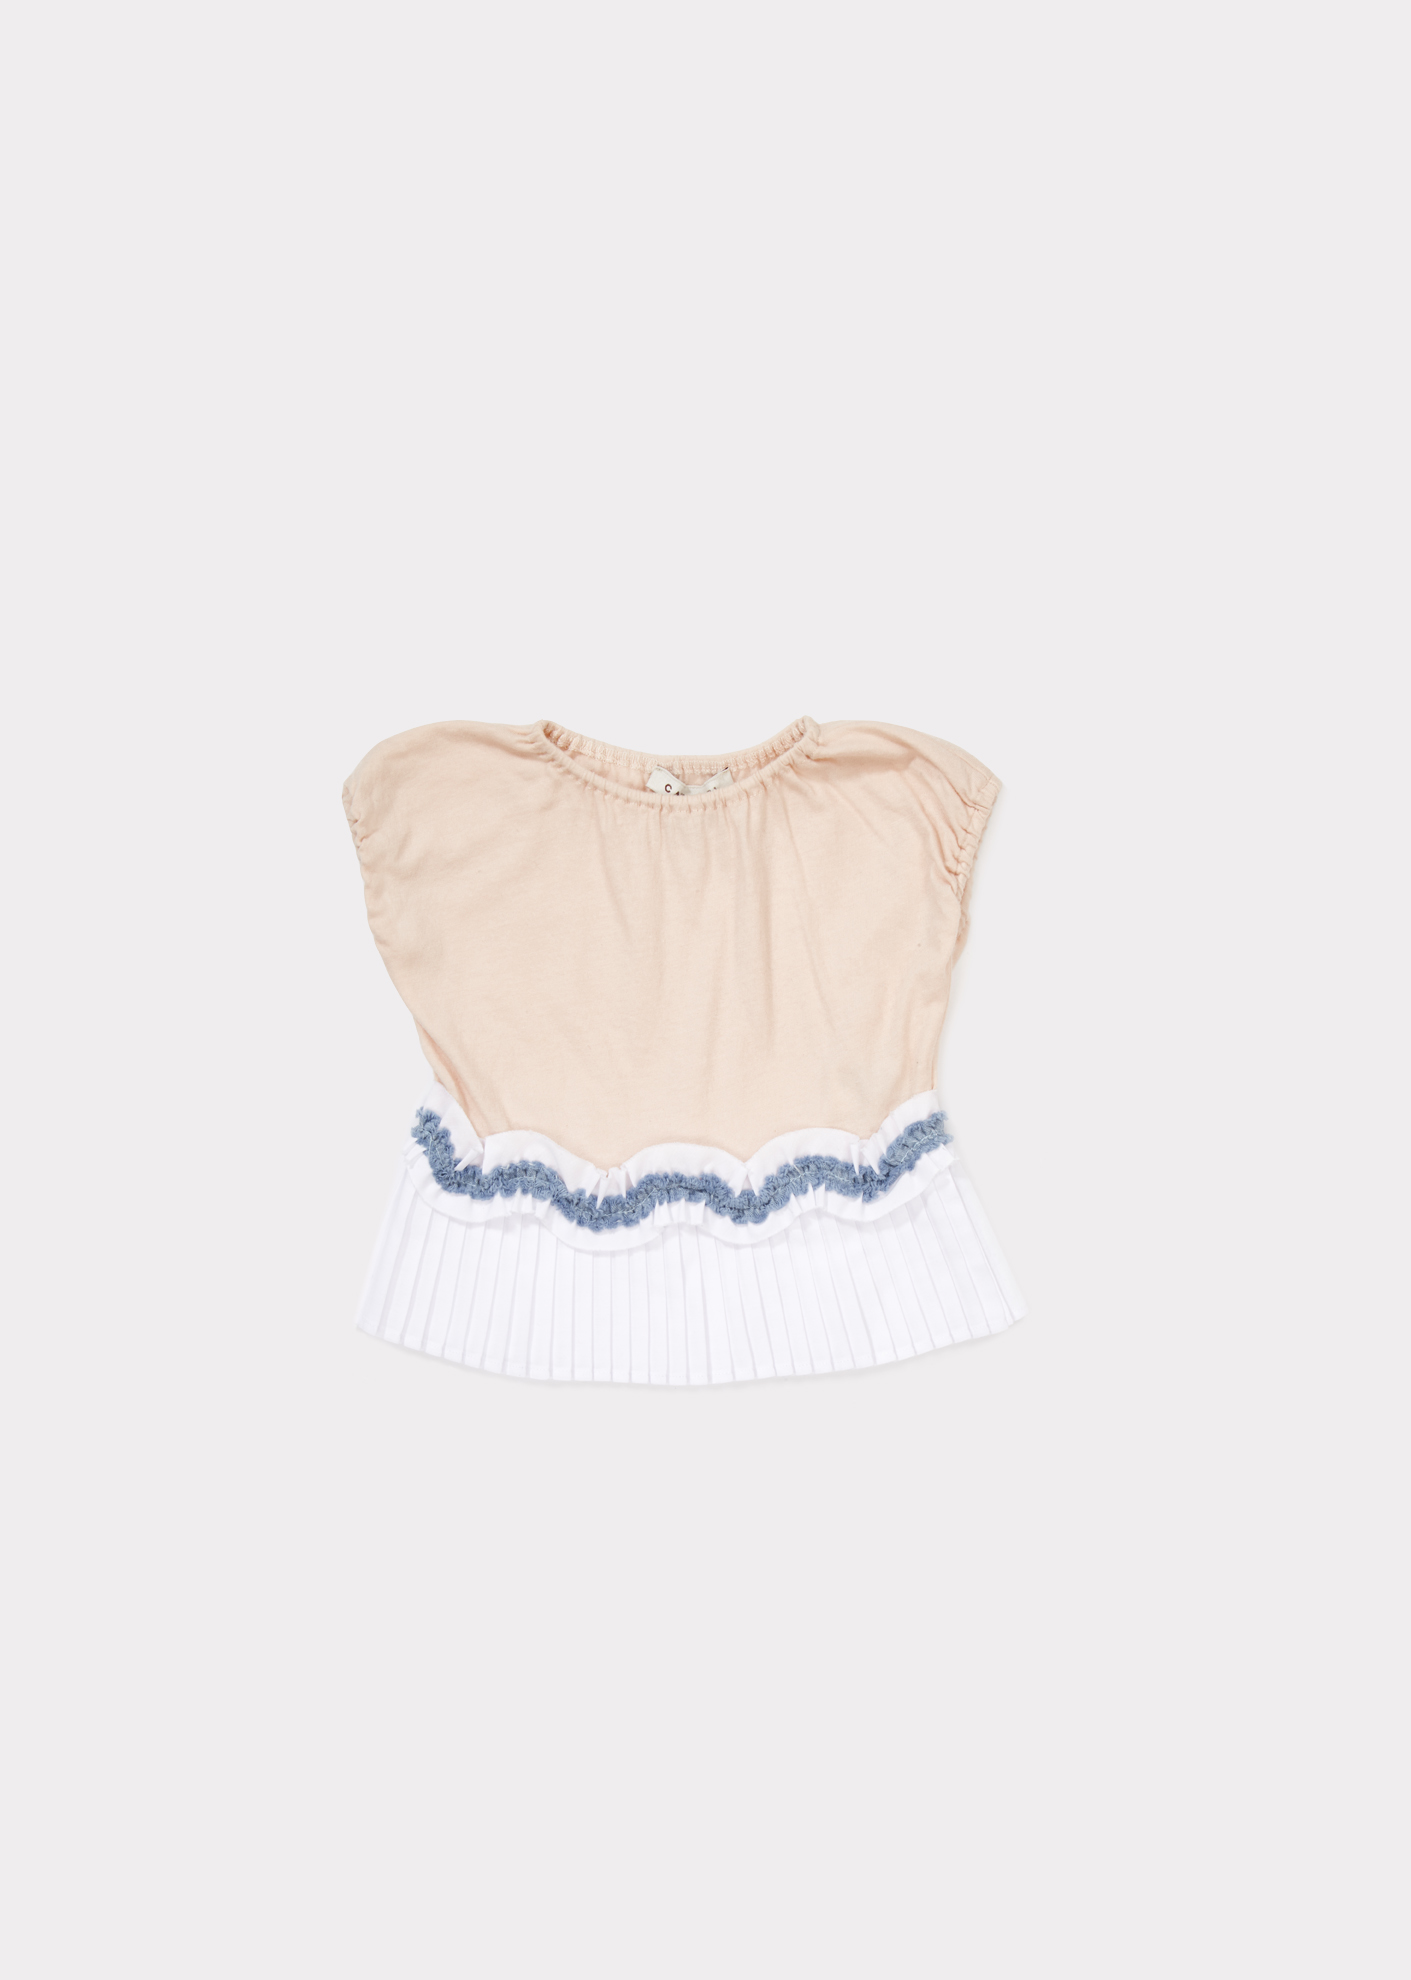 Caramel  - AMISK BABY T-SHIRT BLUSH PINK - Clothing